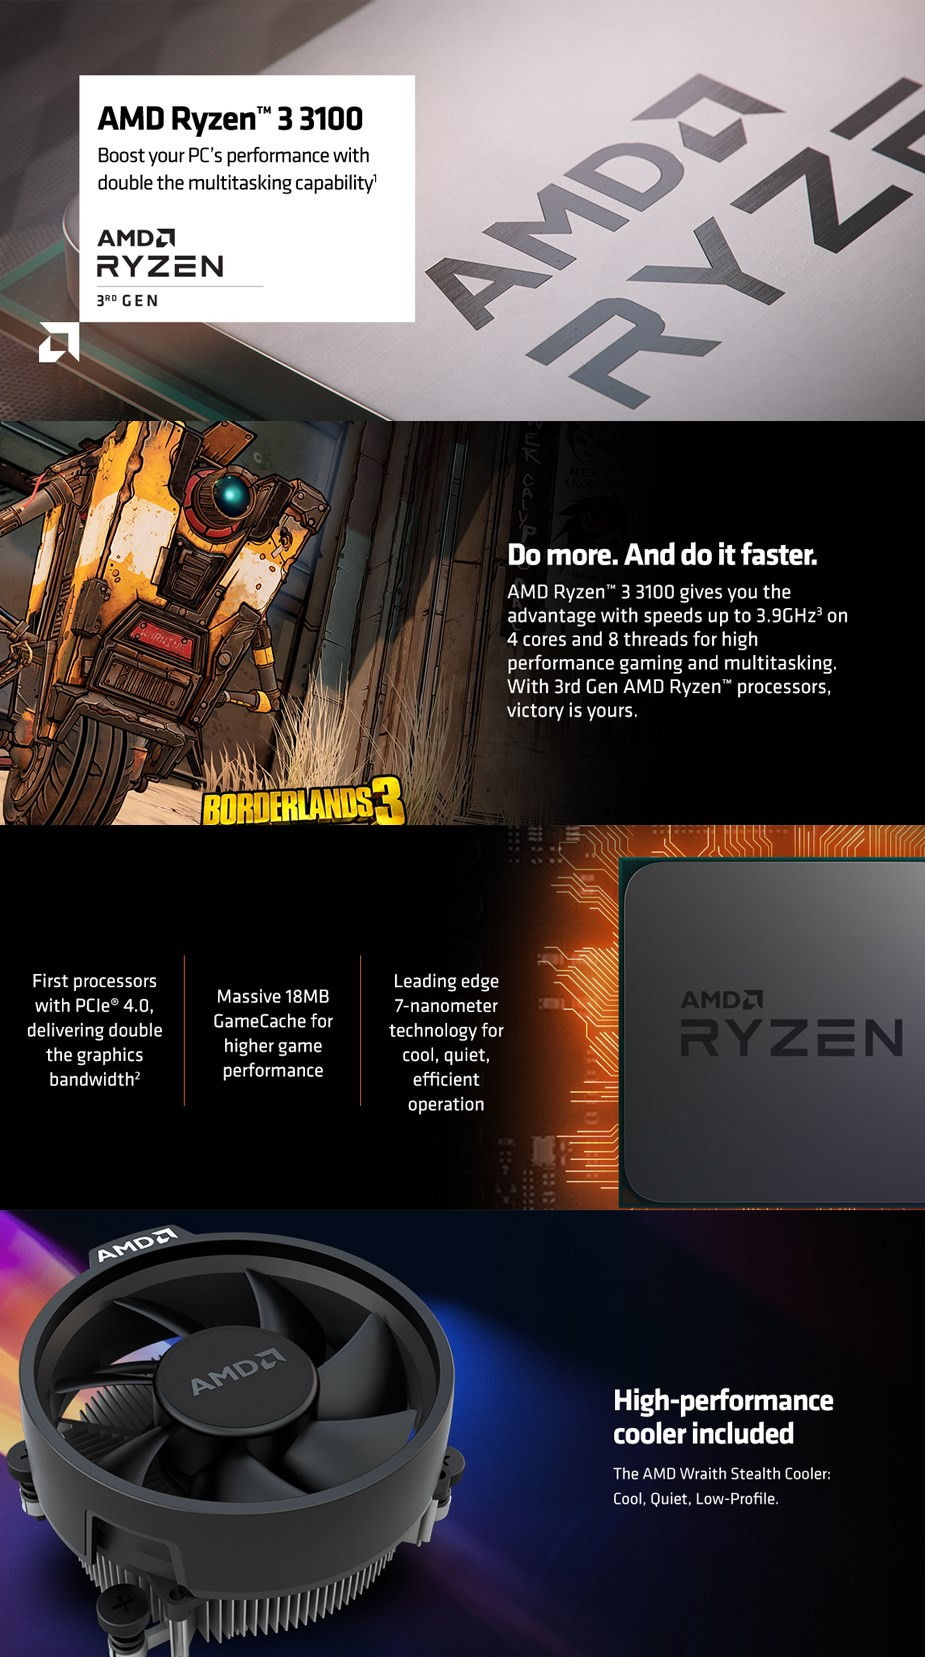 AMD Ryzen 3 3100 4 Core Socket AM4 3.6GHz CPU Processor + Wraith Stealth Cooler - Overview 1